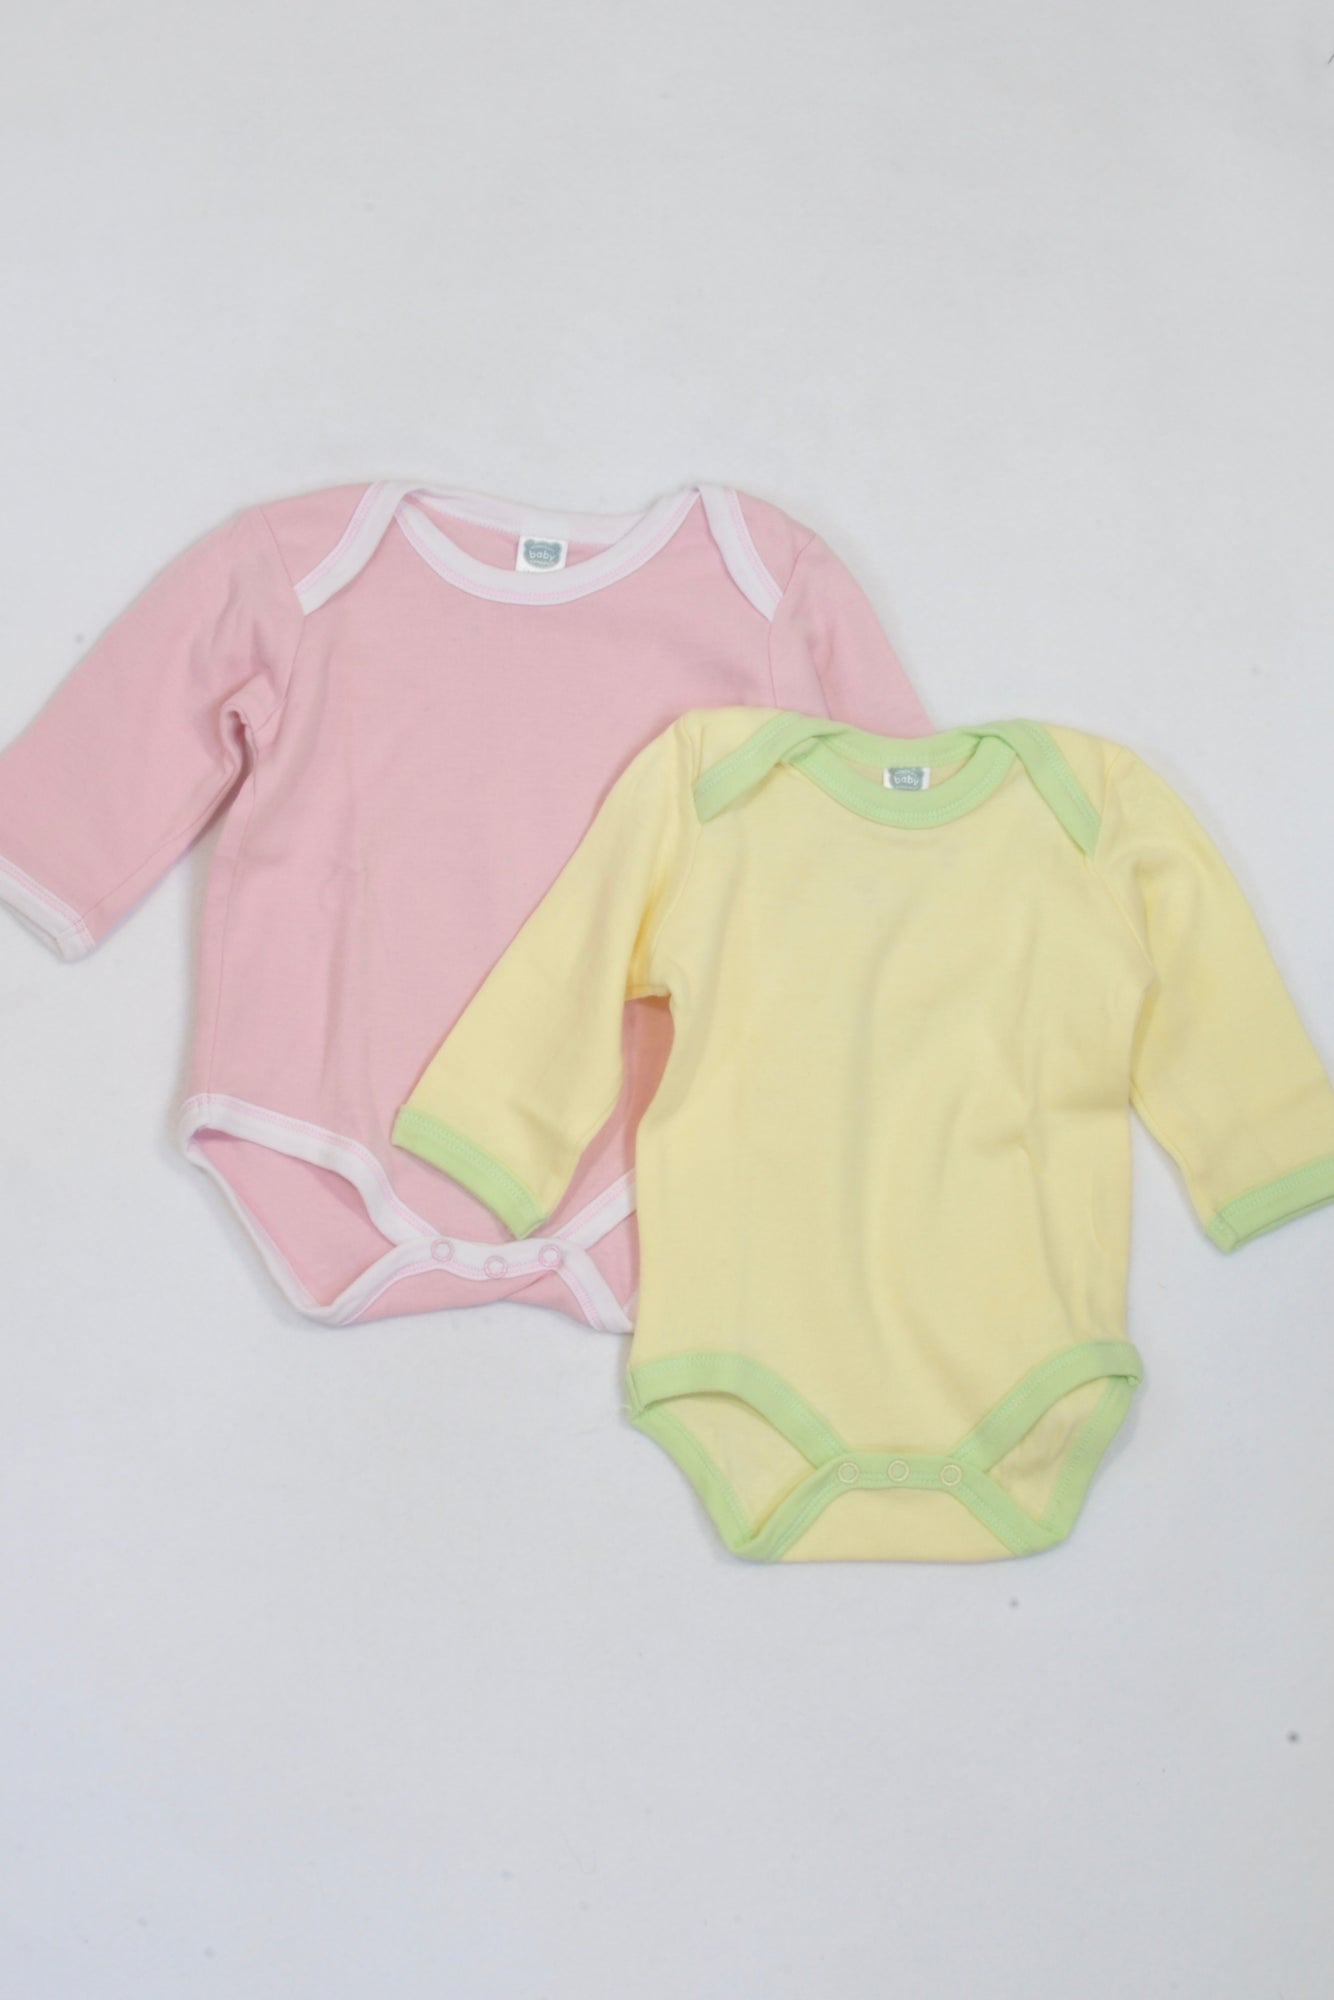 Ackermans 2 Pack Pink & Yellow  Baby Grows Girls 3-6 months